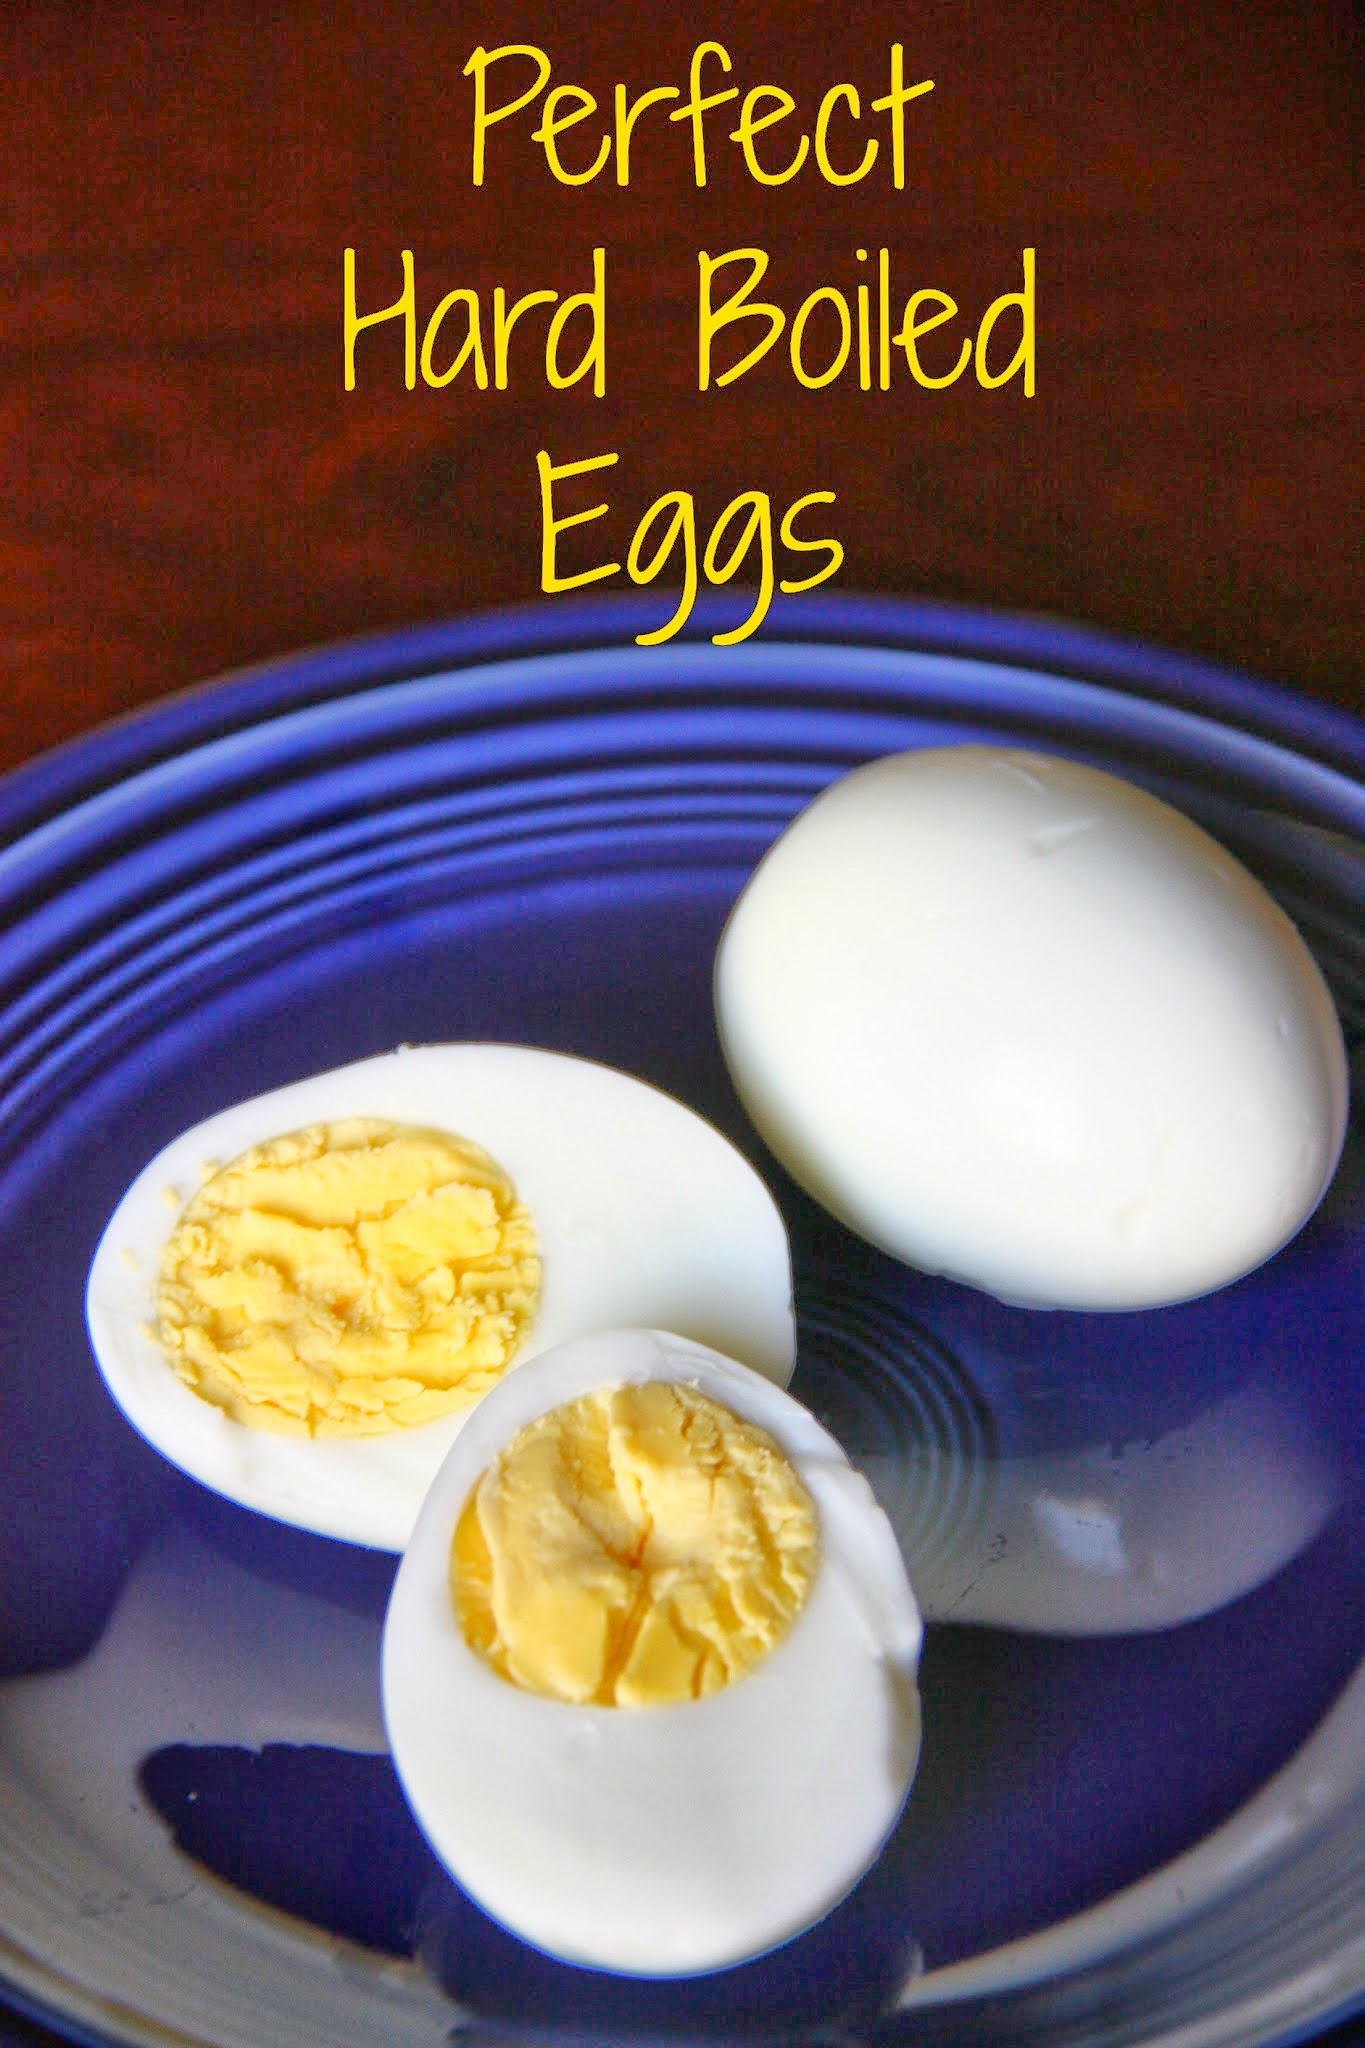 ... every time. No grey or runny yolk. Just perfect hard boiled eggs